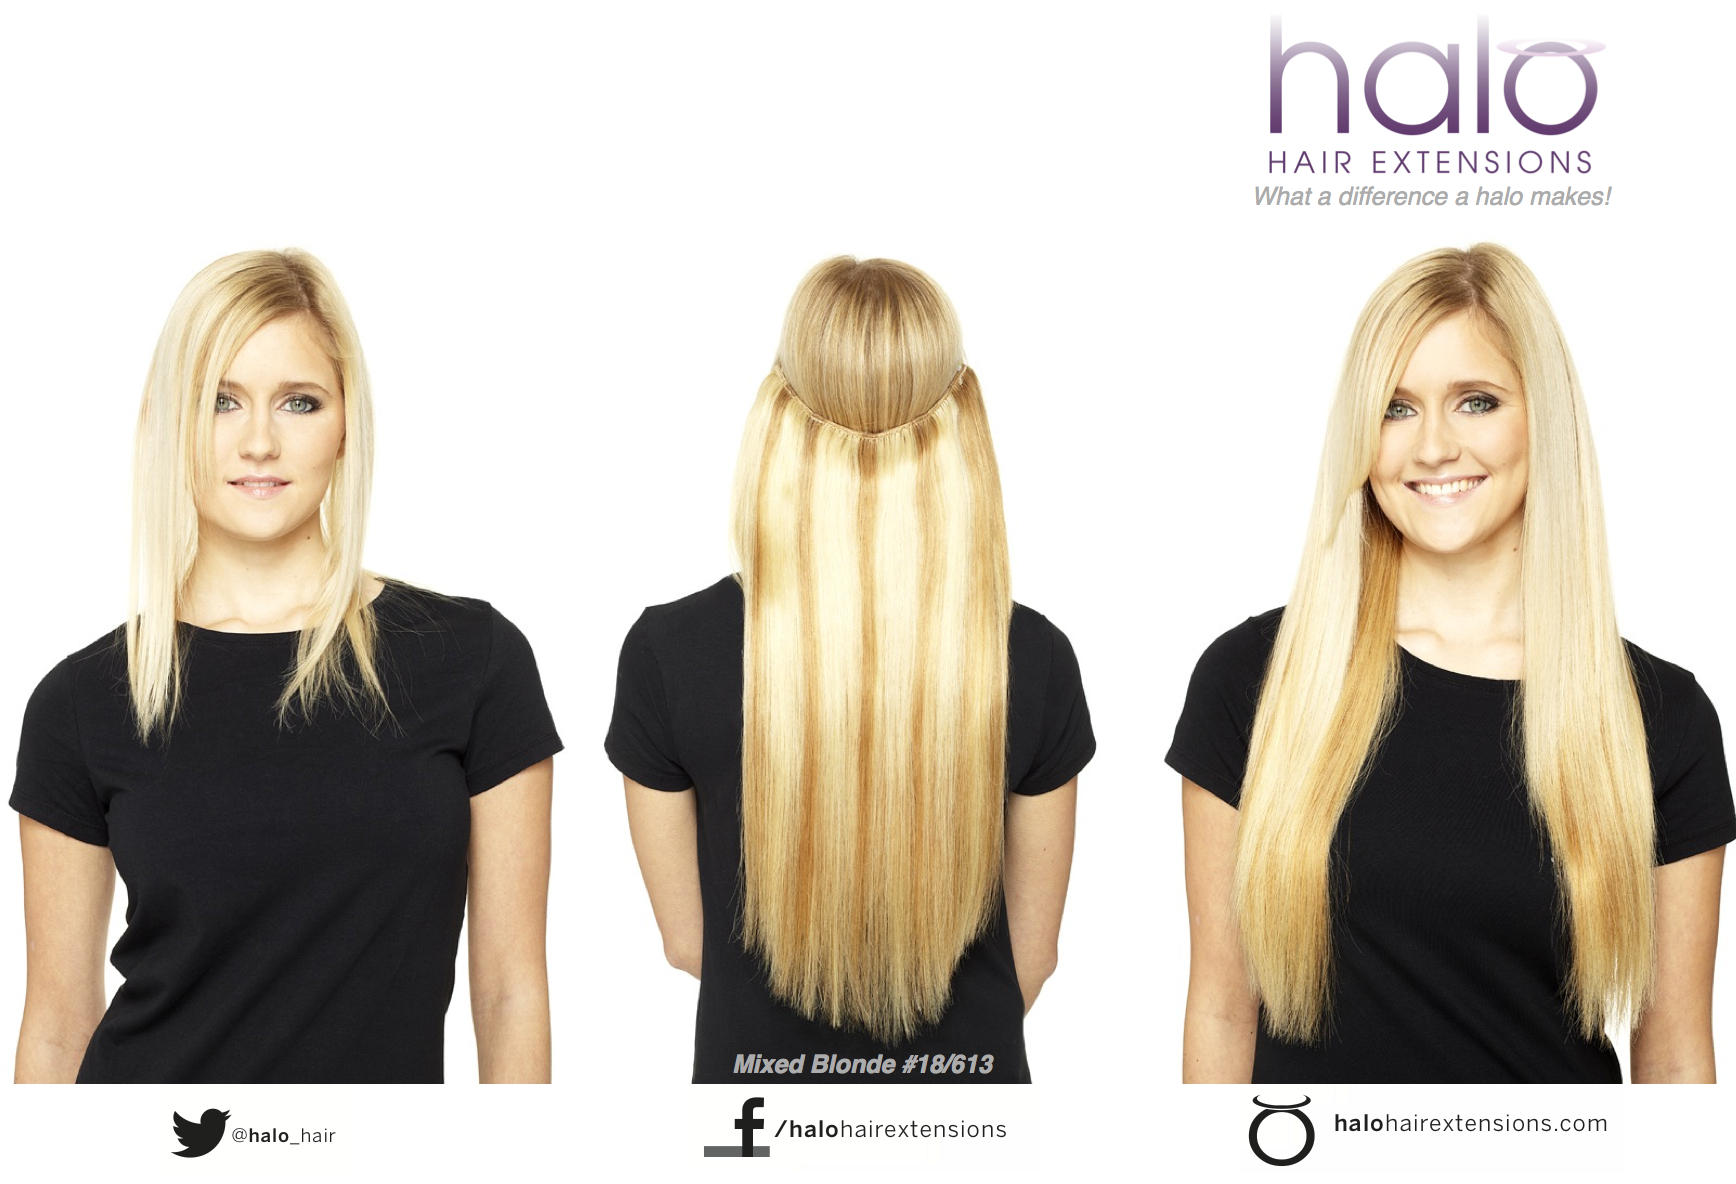 Halo Hair Extensions On Twitter Heres A Great Photo Of Our Mixed